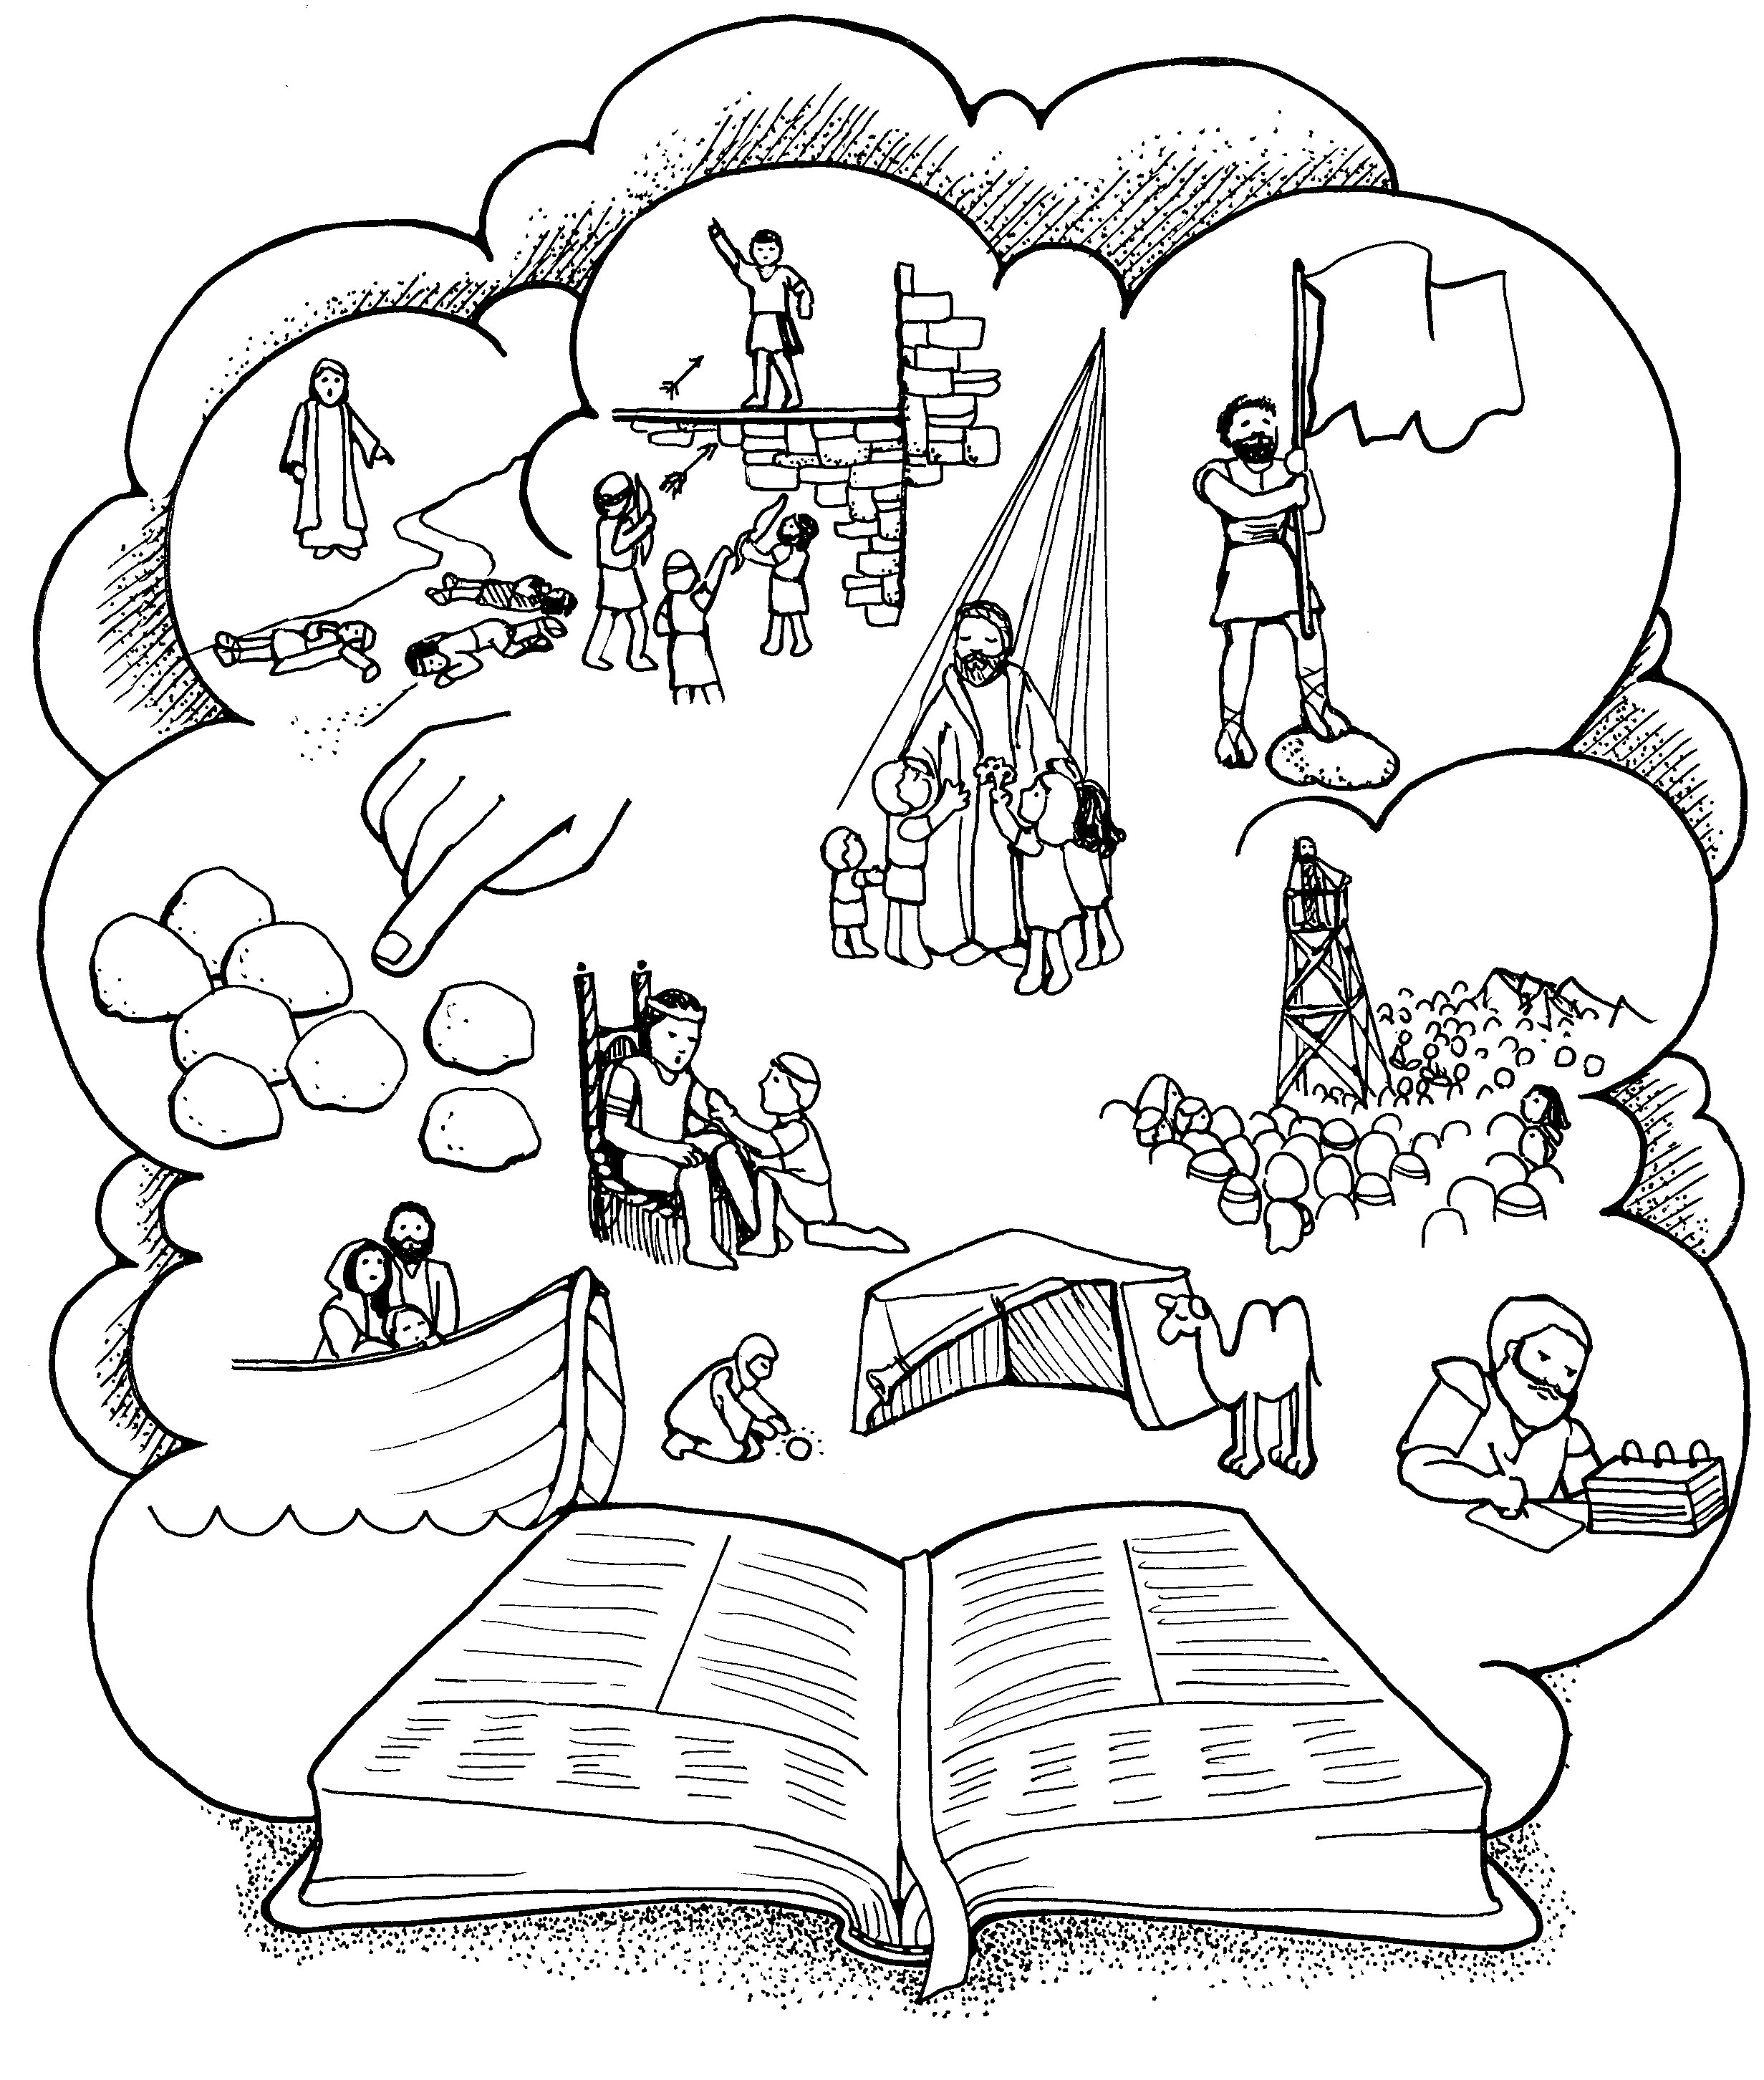 Picture of ammon lds black and white clipart clipart freeuse download Book of mormon golden plates coloring page clipart freeuse download